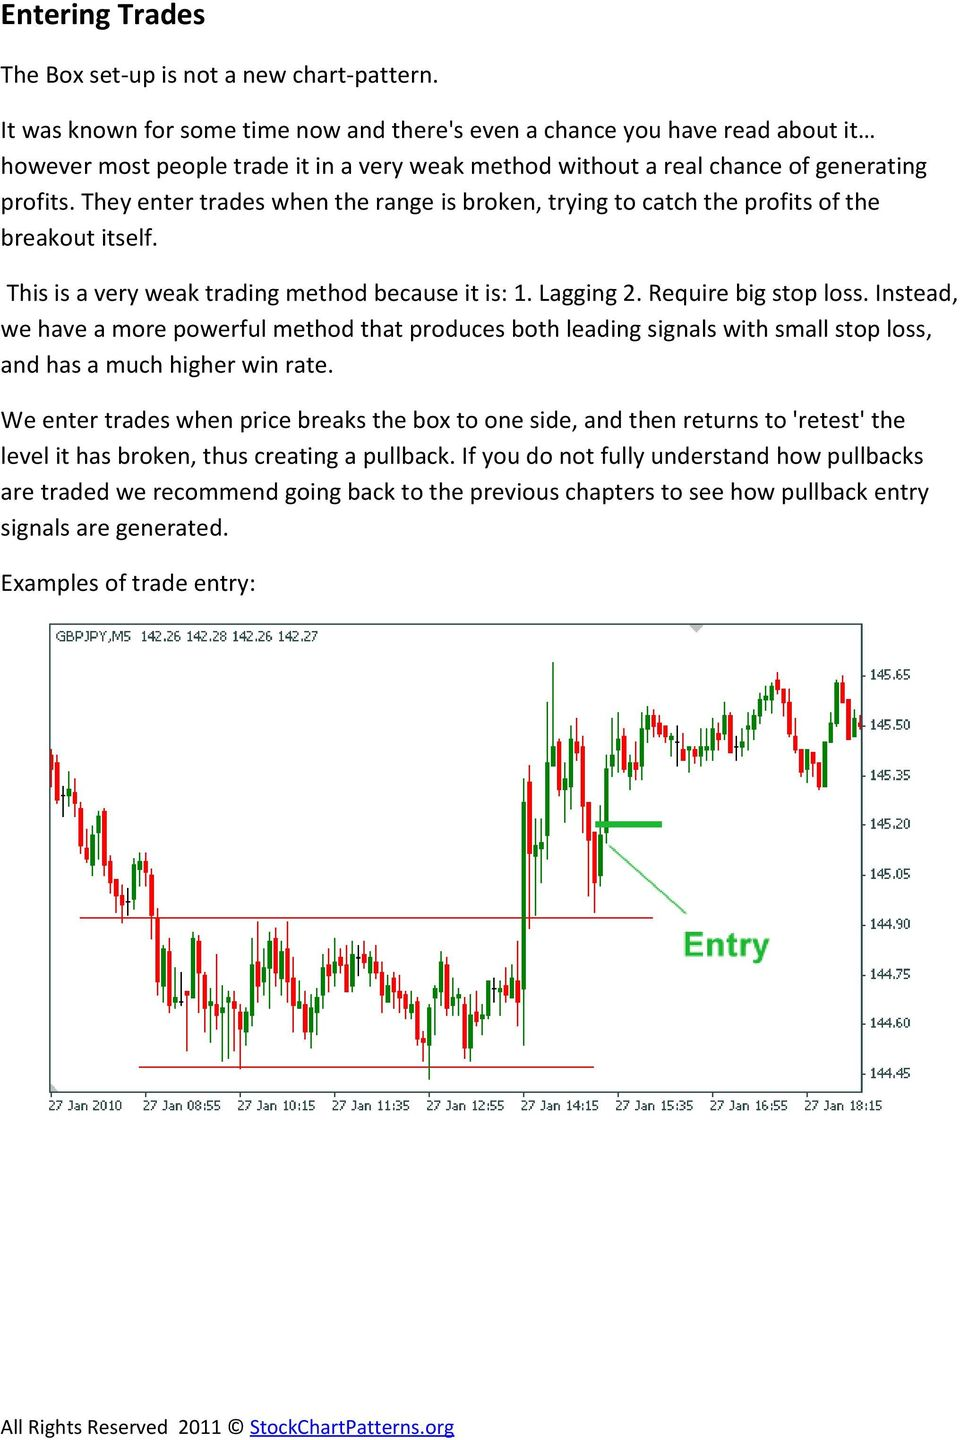 They enter trades when the range is broken, trying to catch the profits of the breakout itself. This is a very weak trading method because it is: 1. Lagging 2. Require big stop loss.